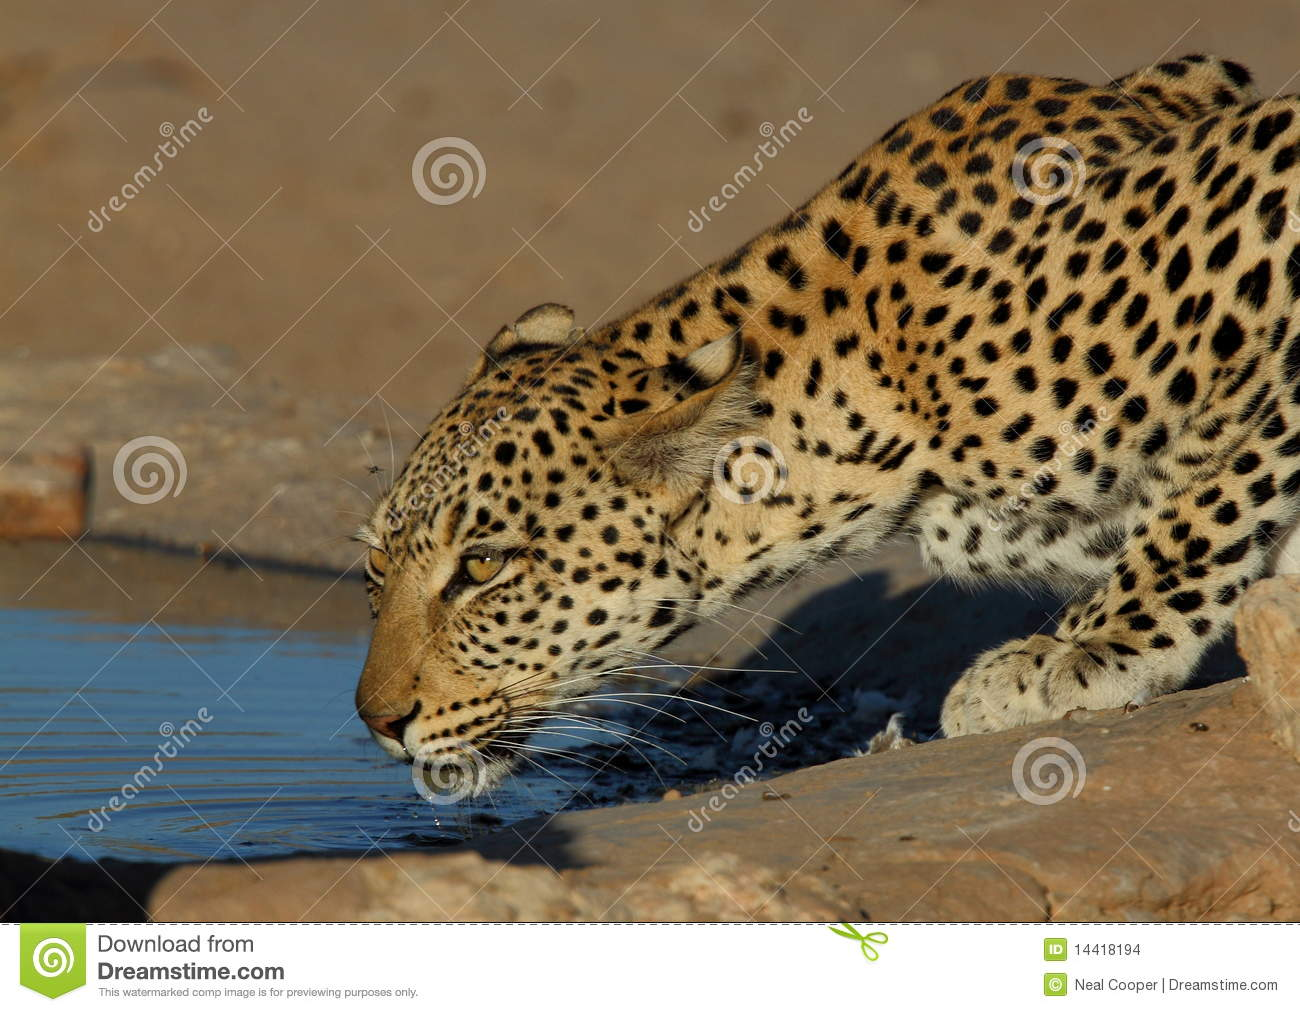 Leopard. Wild Big Cat. Stock Photography | CartoonDealer ...